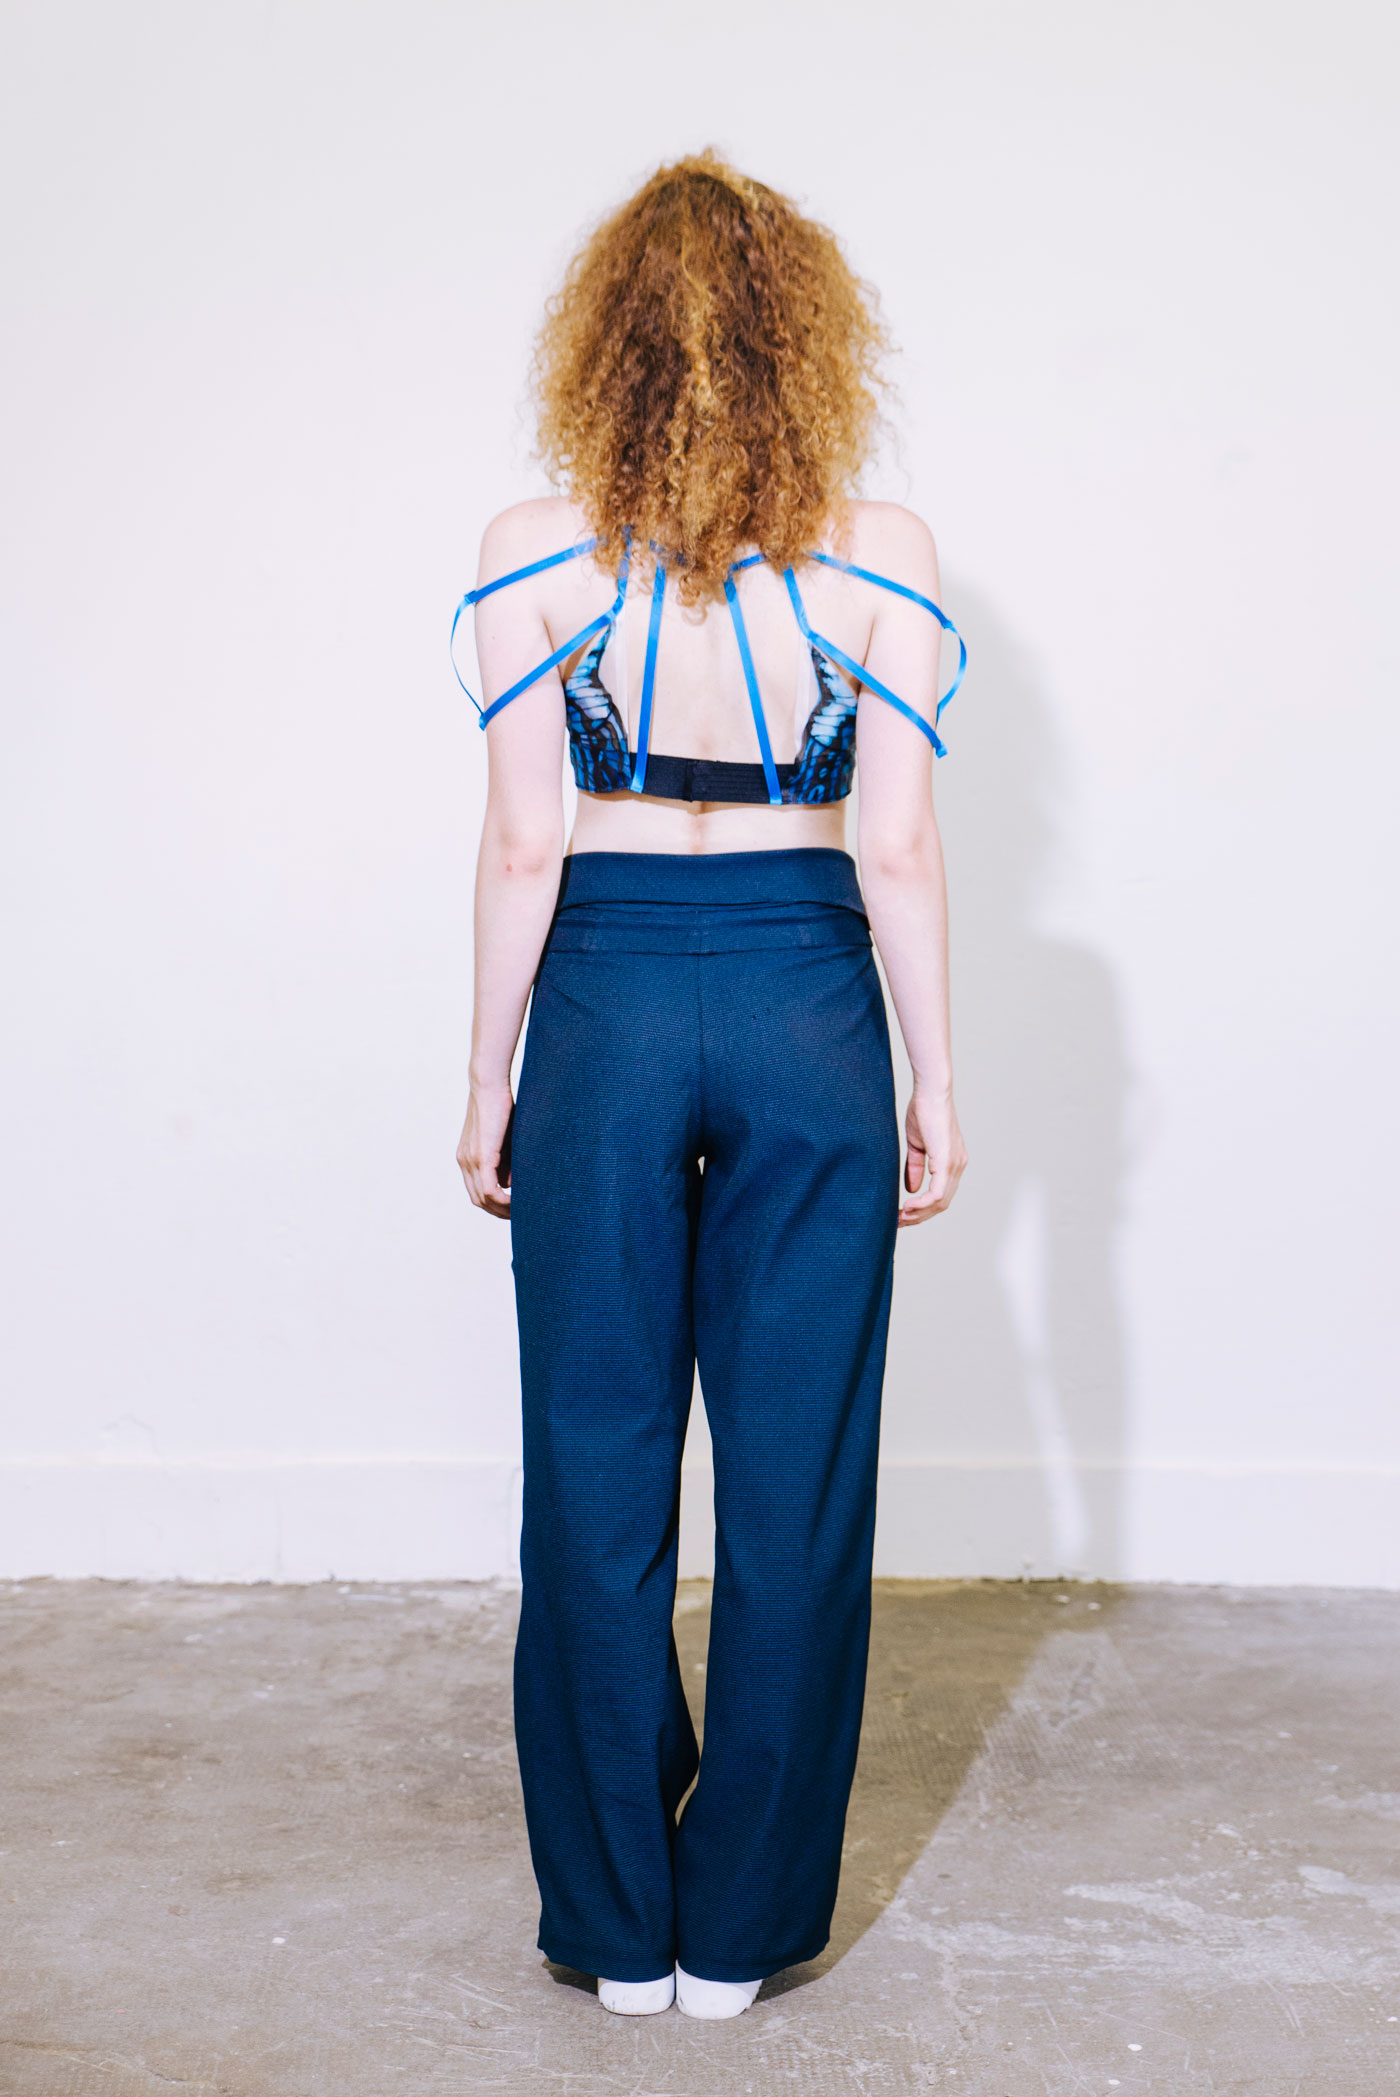 Fashion silhouette with dark green trousers combined with a bustier in blue, black painted silk